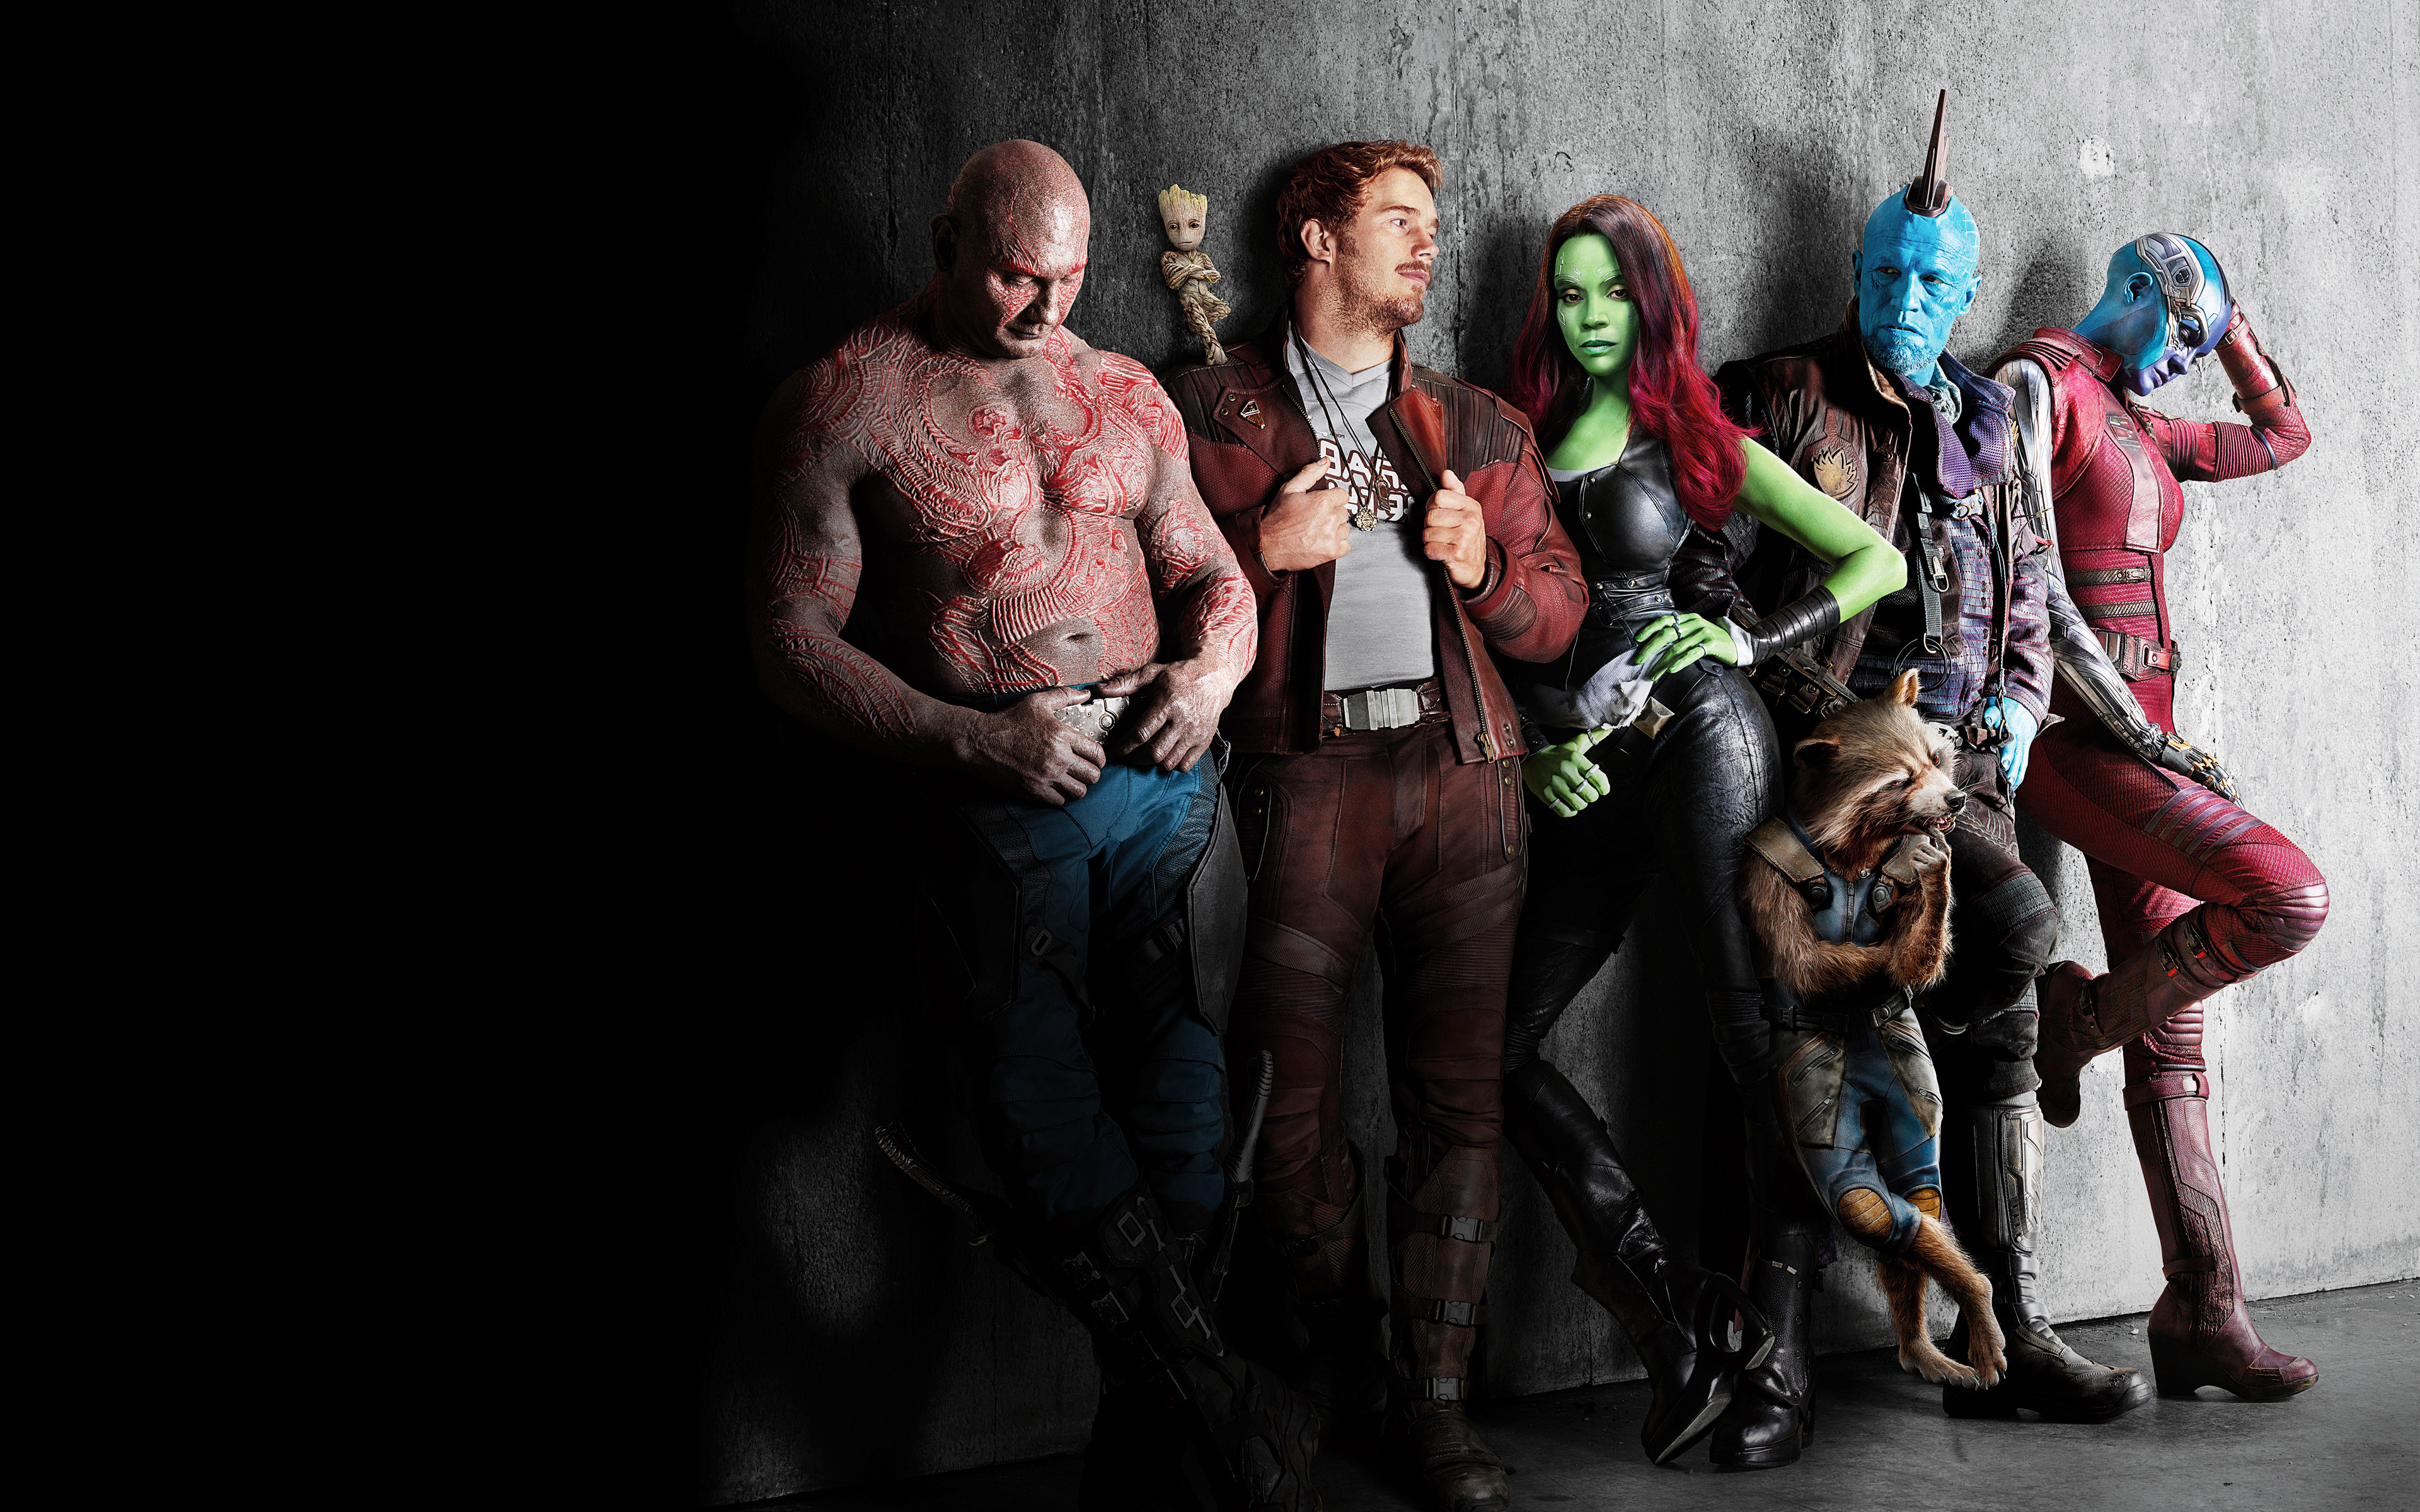 Guardians Of The Galaxy Hd Wallpaper: Guardians Of The Galaxy Vol 2 4K HD Wallpapers